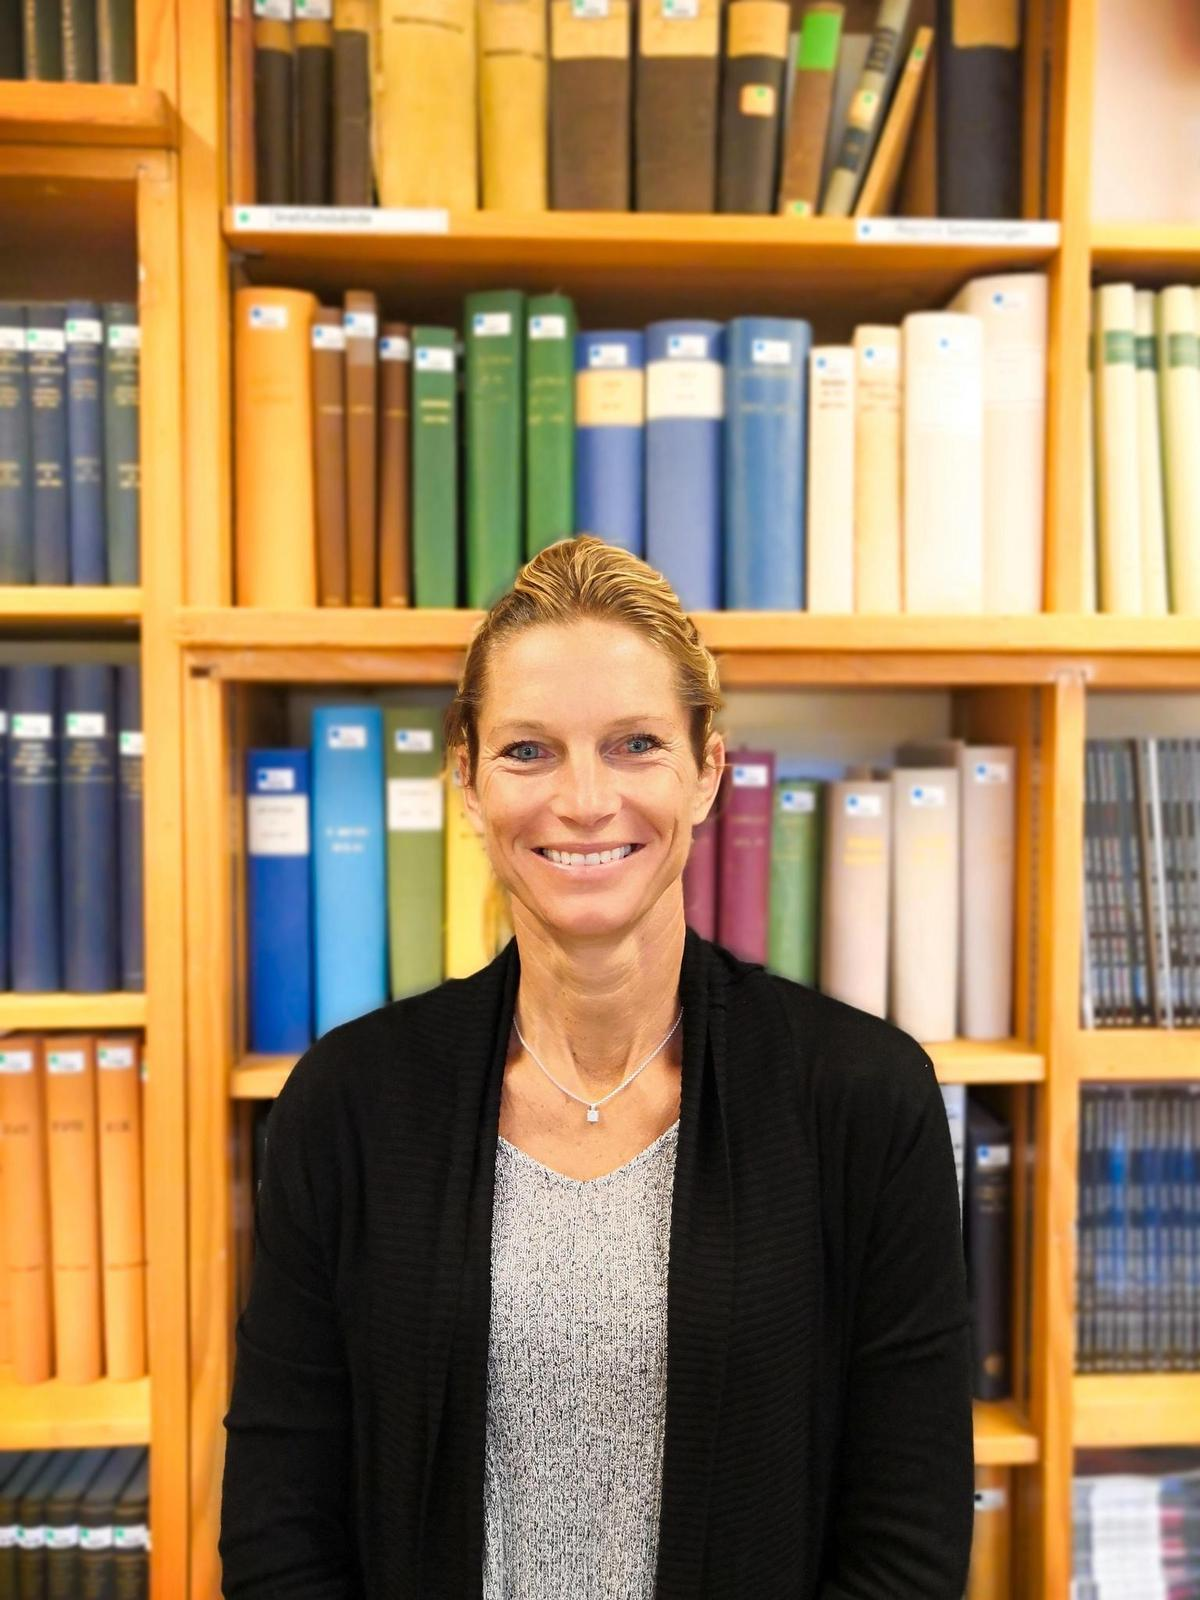 Optogeneticist Sonja Kleinlogel is the co-founder of Arctos Medical, now acquired by Novartis.